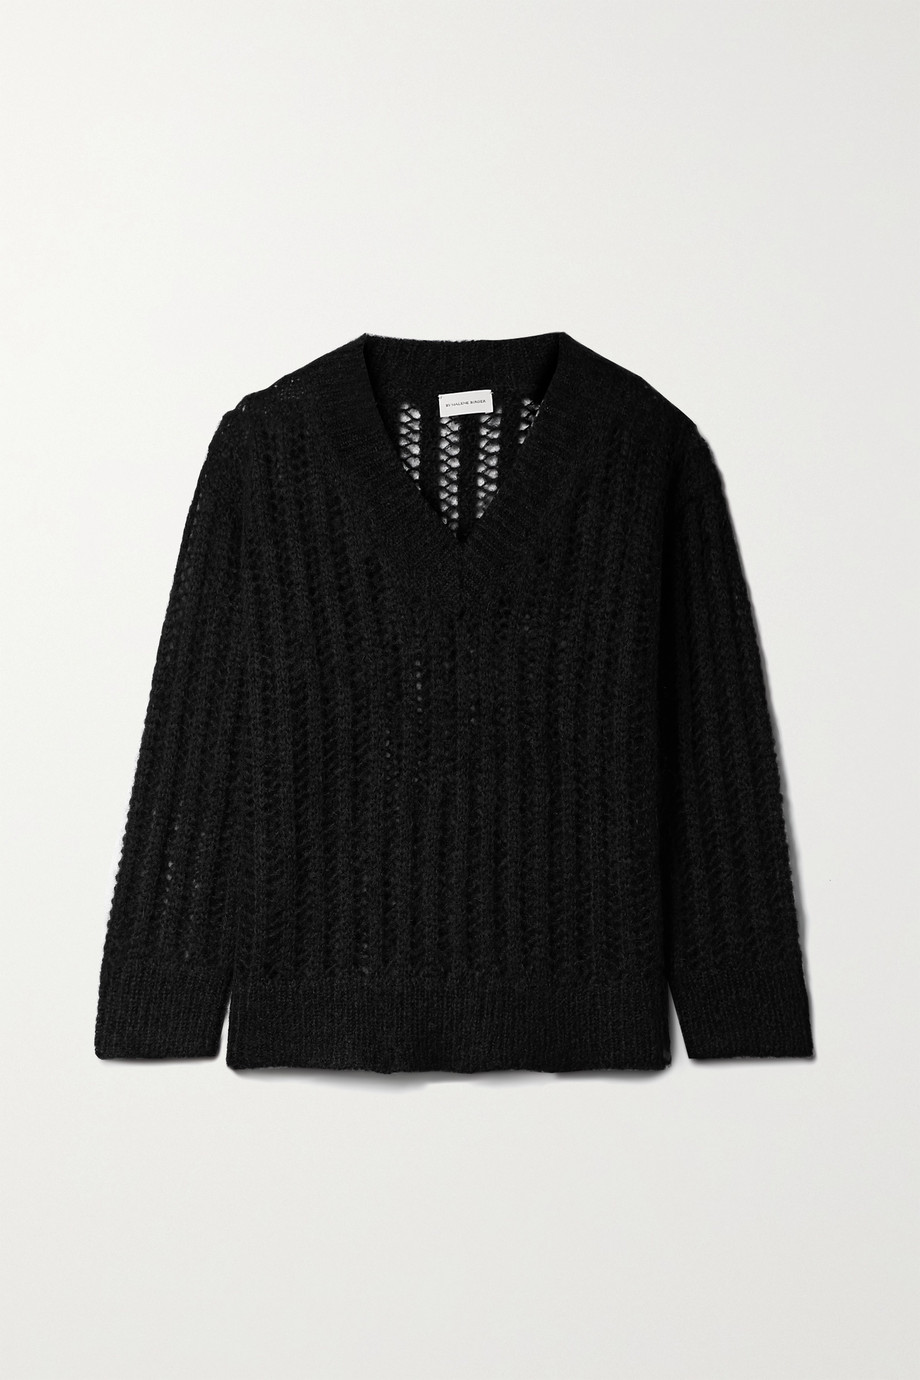 BY MALENE BIRGER Atropa open-knit mohair-blend sweater